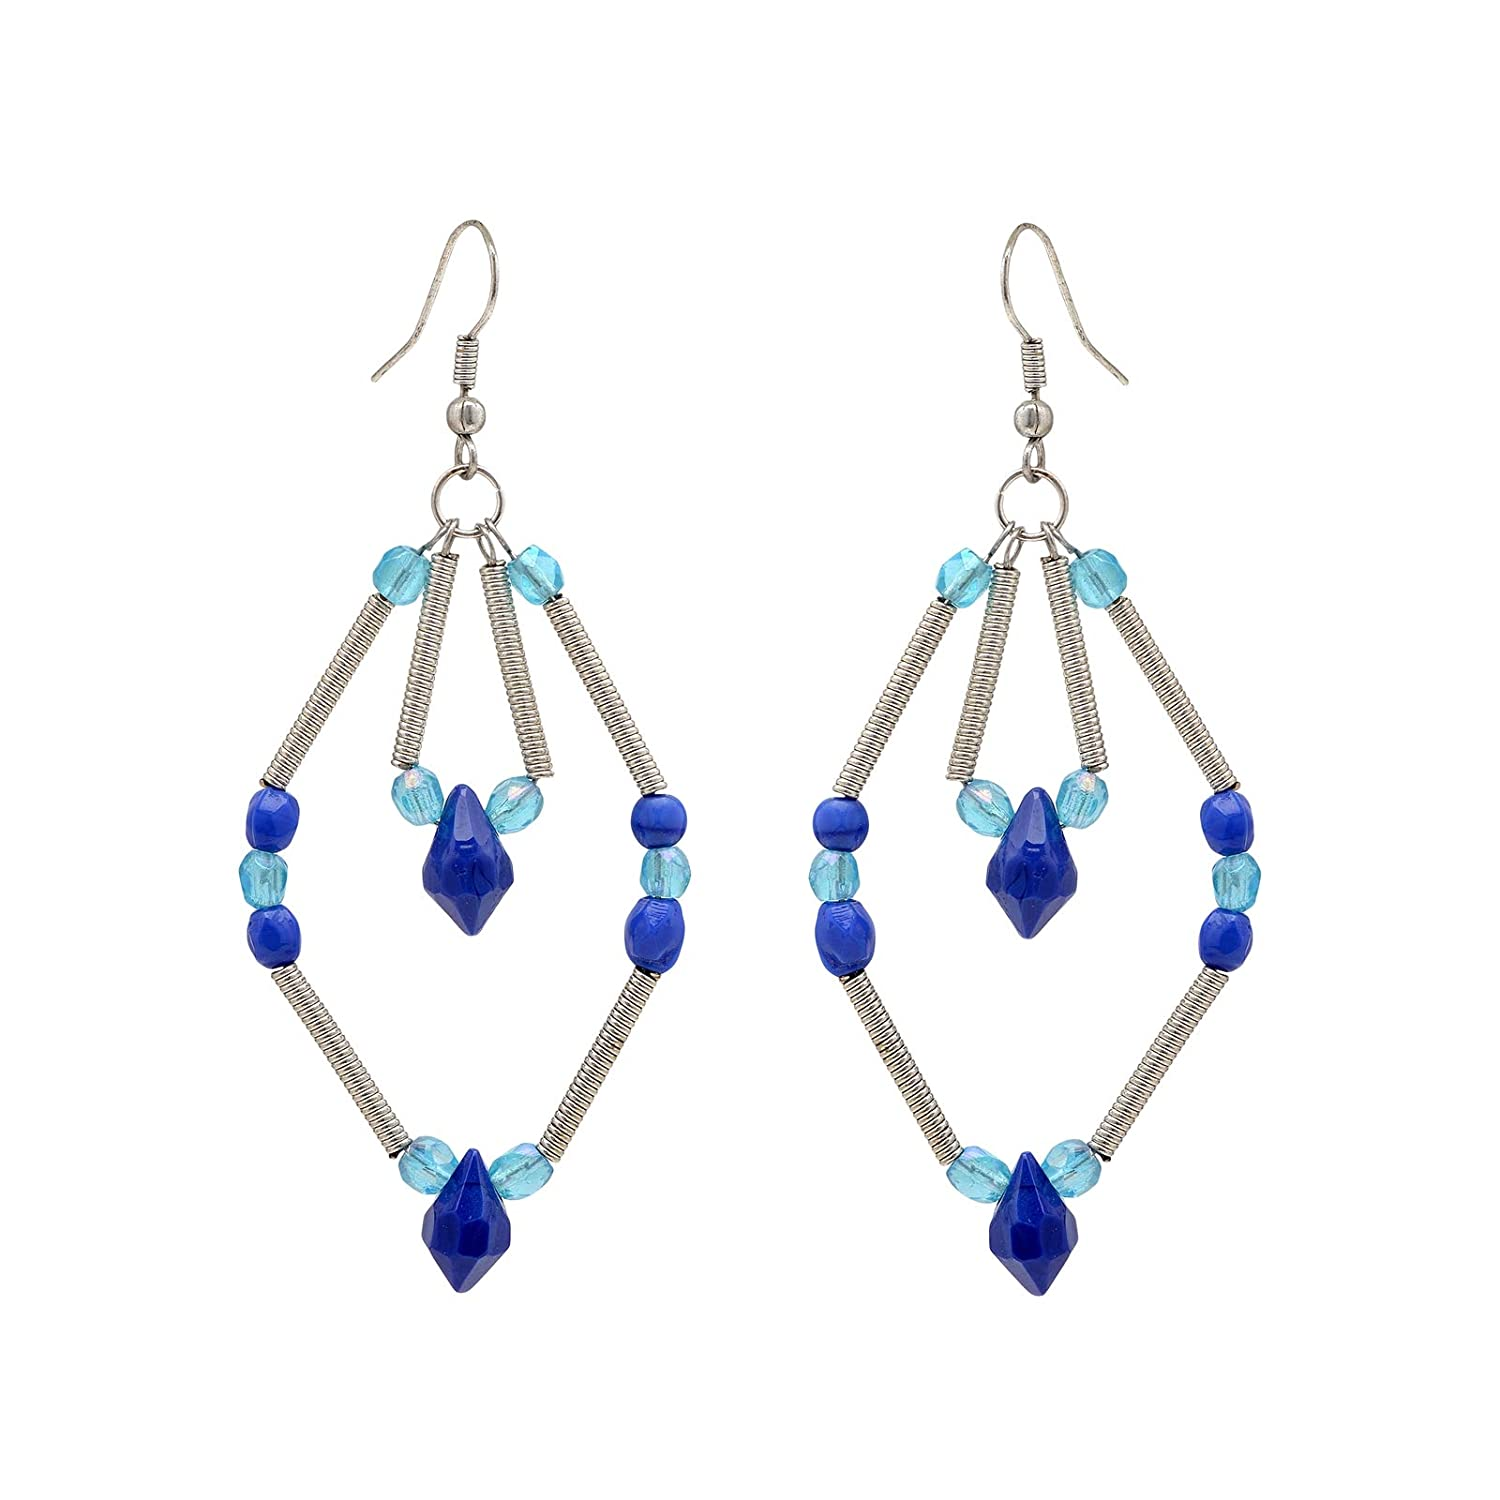 Zephyrr Cocktail Blue//White//Red Alloy Drop Earrings Set Of 3 Layered Silver Tone CO-1189